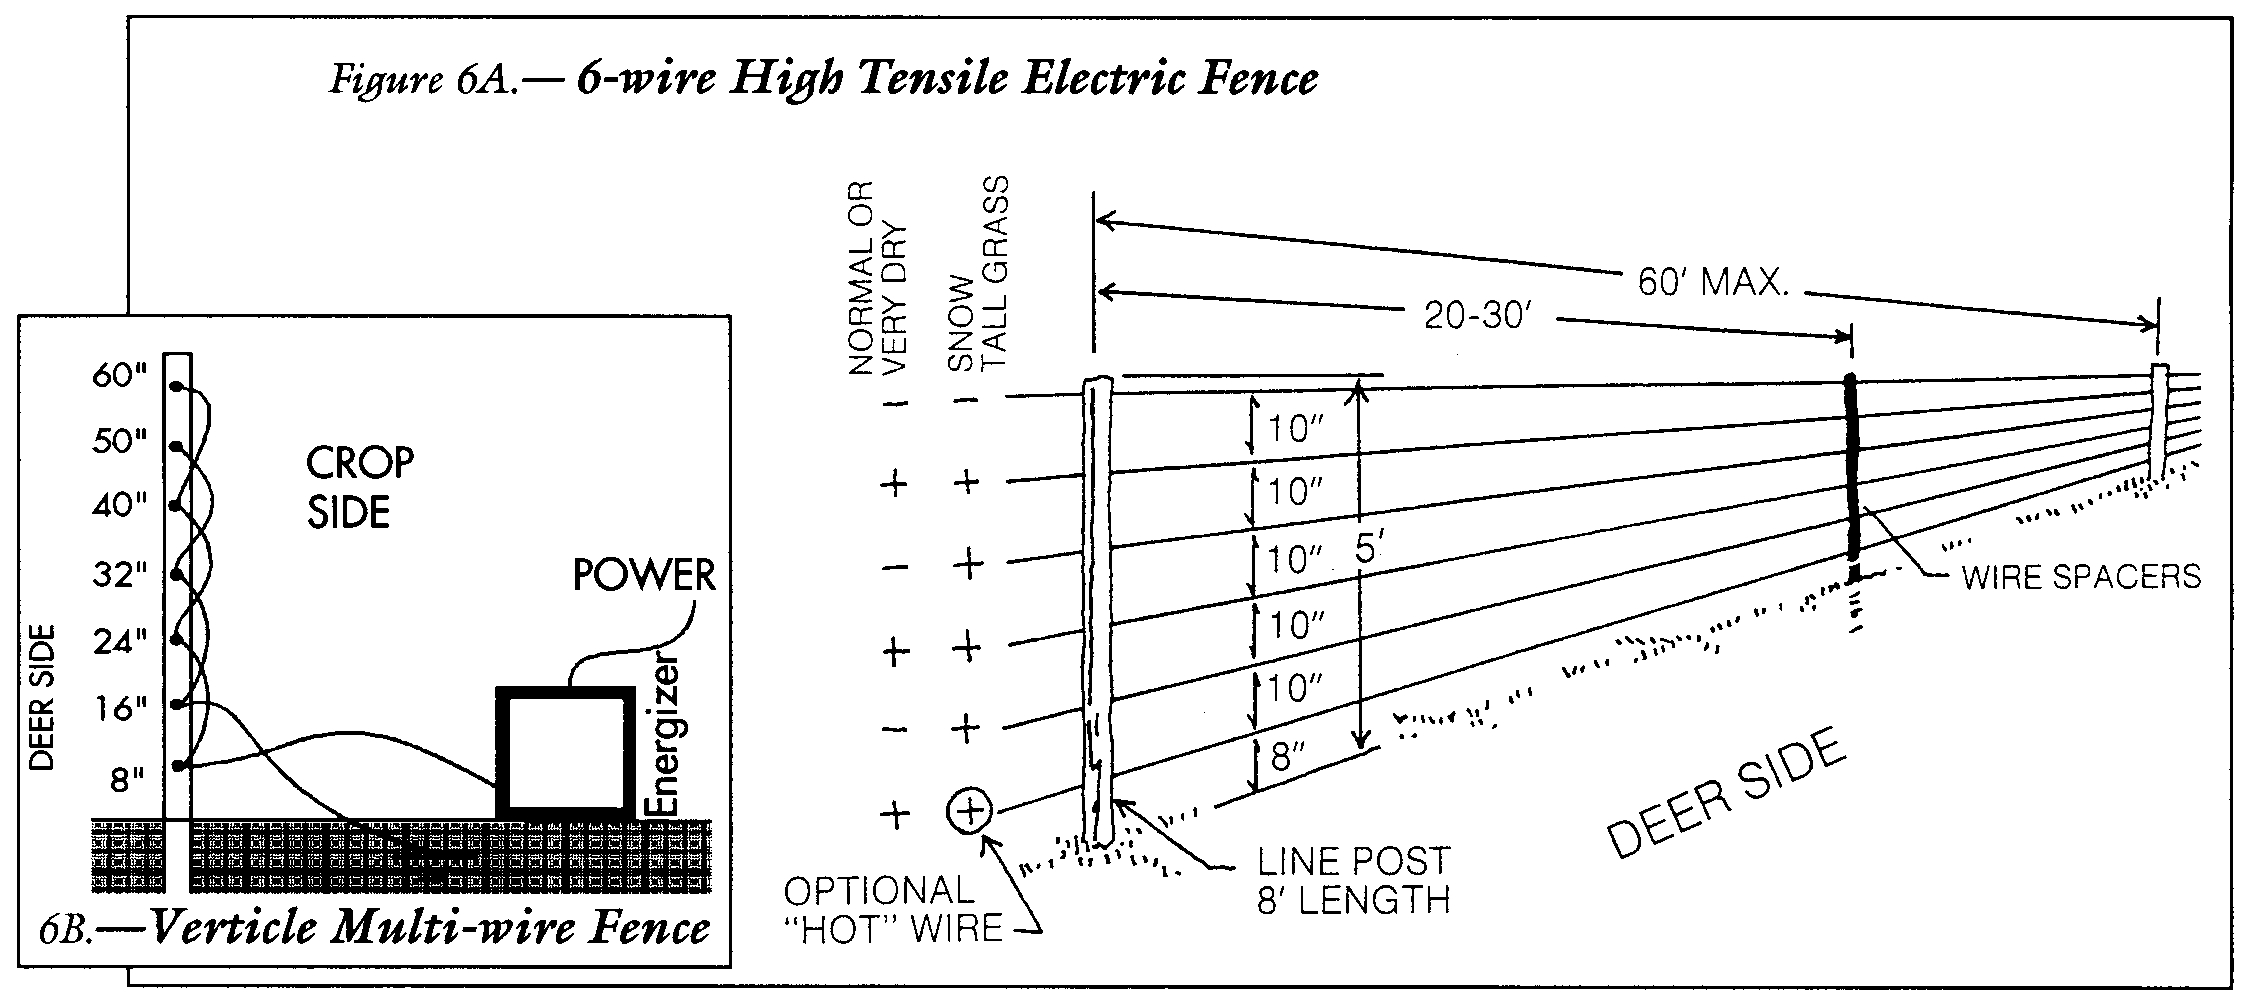 Nemtek Electric Fence Troubleshooting Fences Design